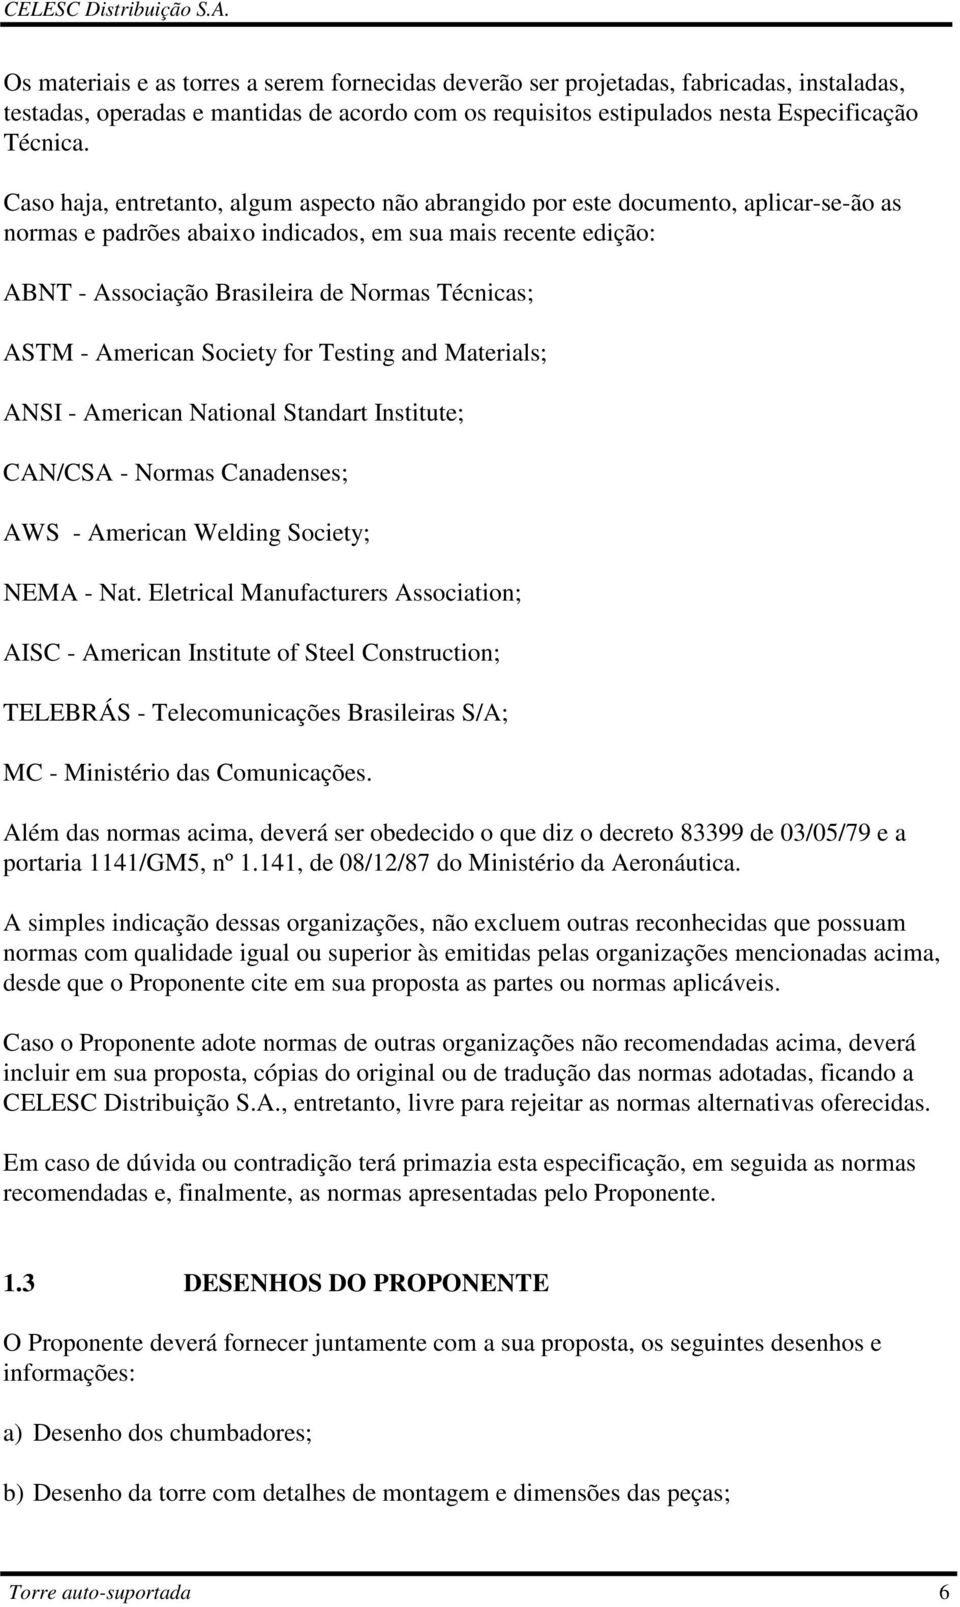 ASTM - American Society for Testing and Materials; ANSI - American National Standart Institute; CAN/CSA - Normas Canadenses; AWS - American Welding Society; NEMA - Nat.